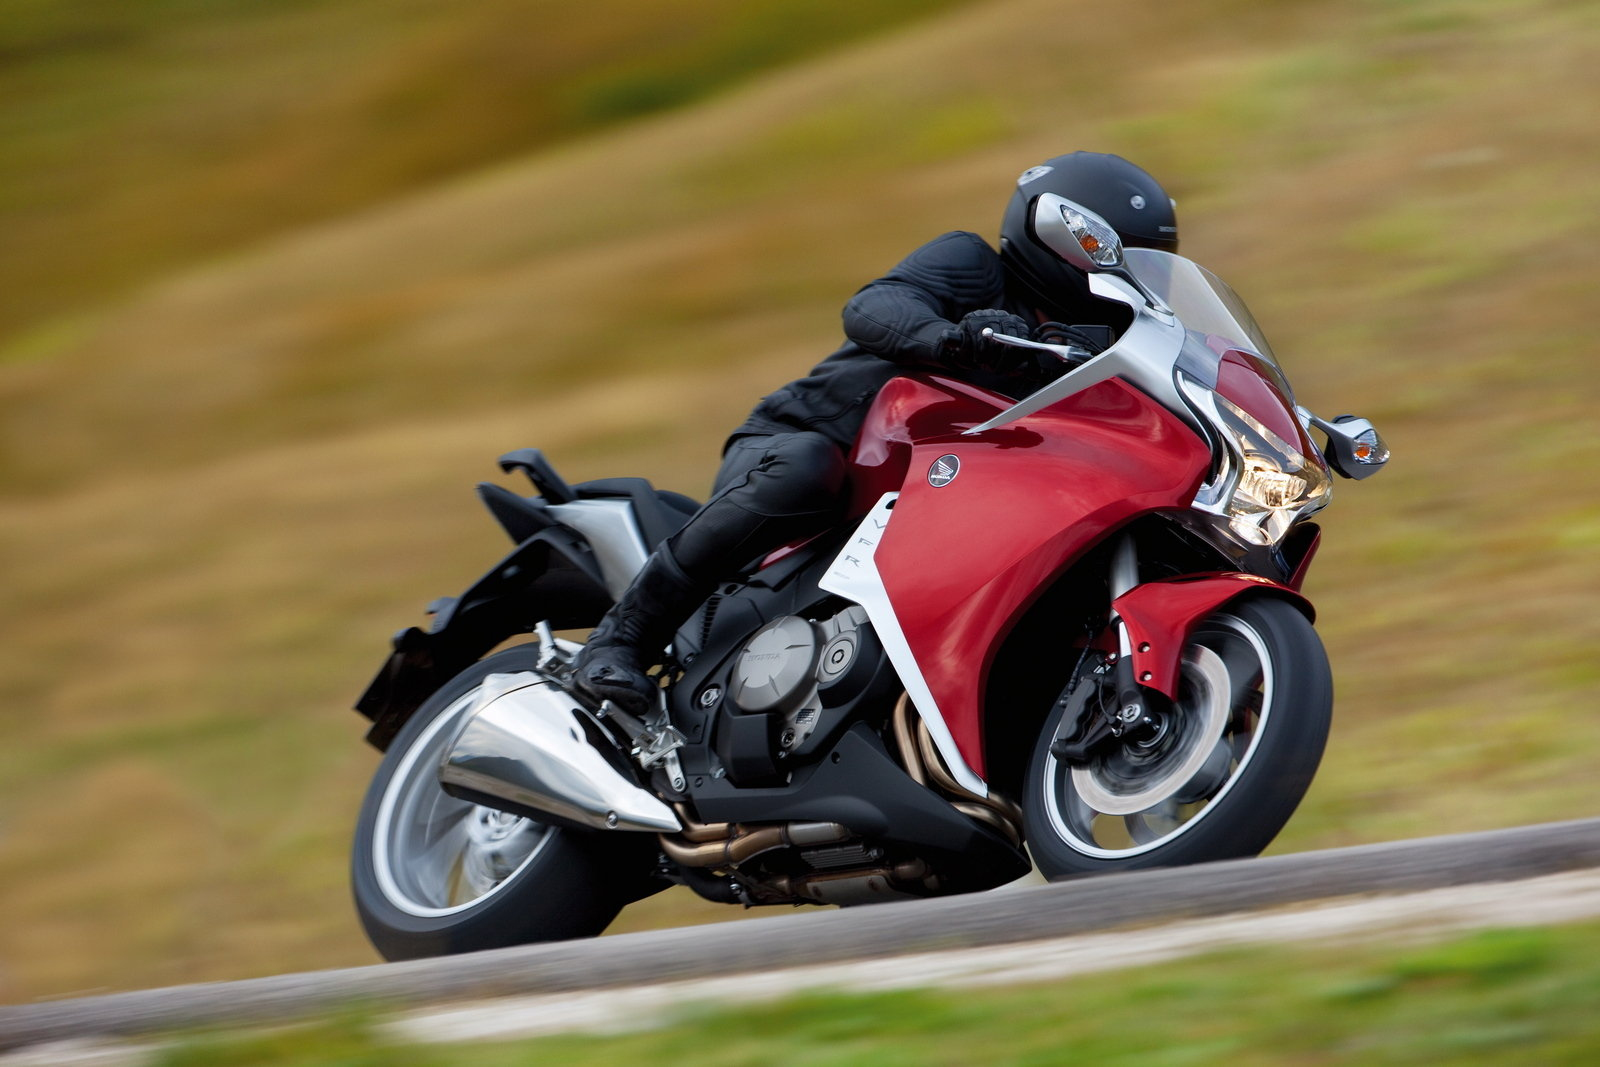 2010 Honda Vfr1200f Gallery 326065 Top Speed